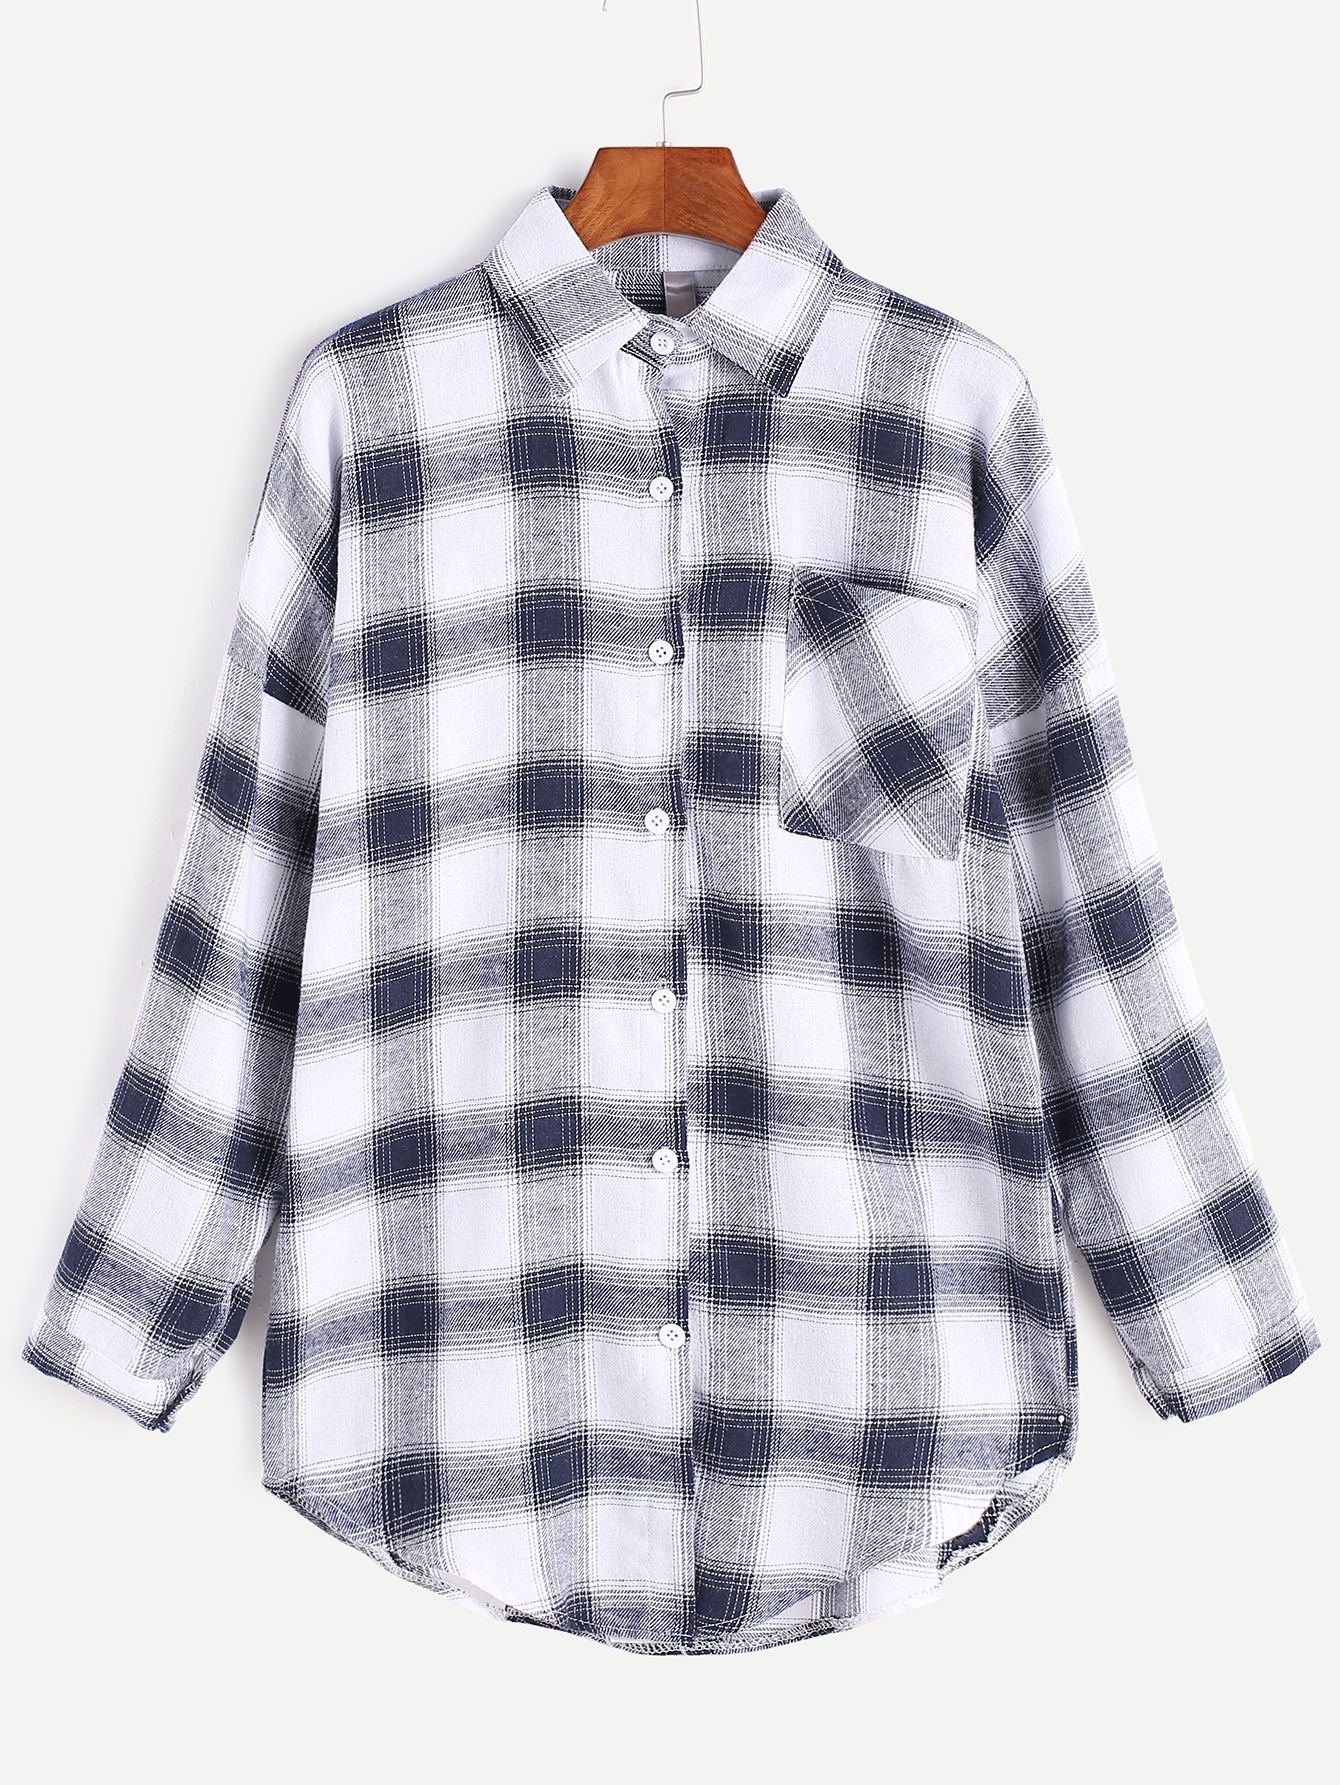 Tartan Plaid Drop Shoulder Curved Hem Pocket Shirt — 0.00 € -----color: White size: one-size